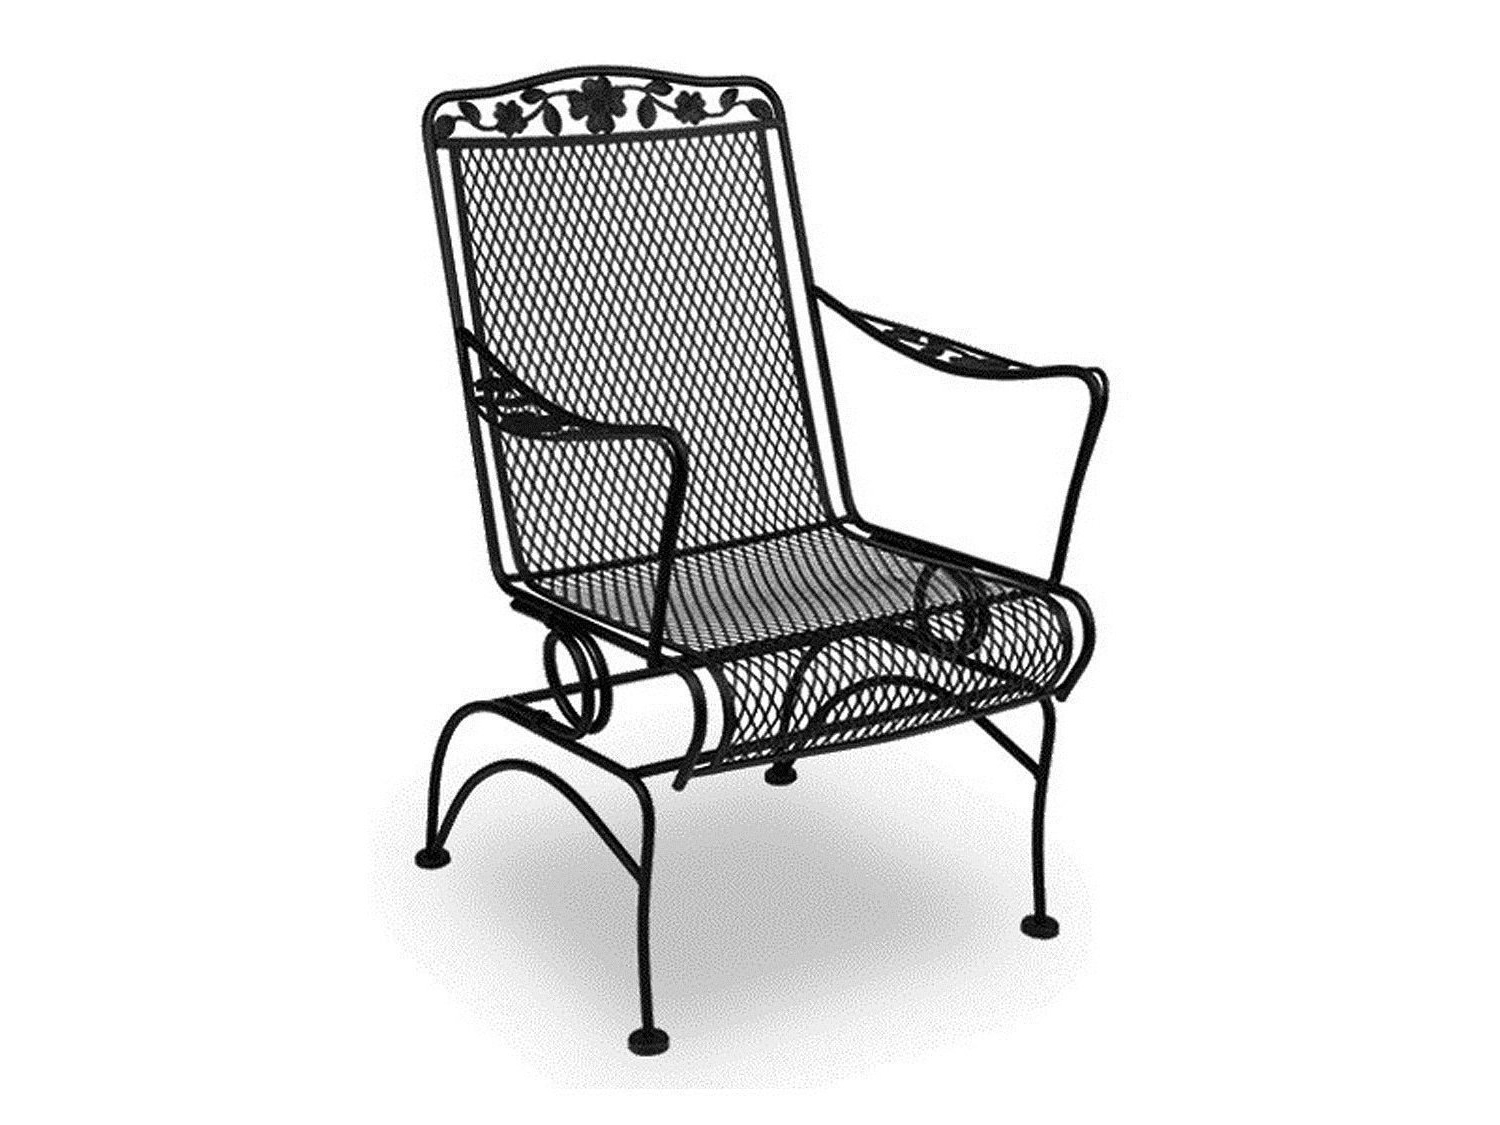 wrought iron rocking chair cotton lounge covers displaying photos of patio chairs view 2 20 most recently released furniture design ideas arelisapril pertaining to